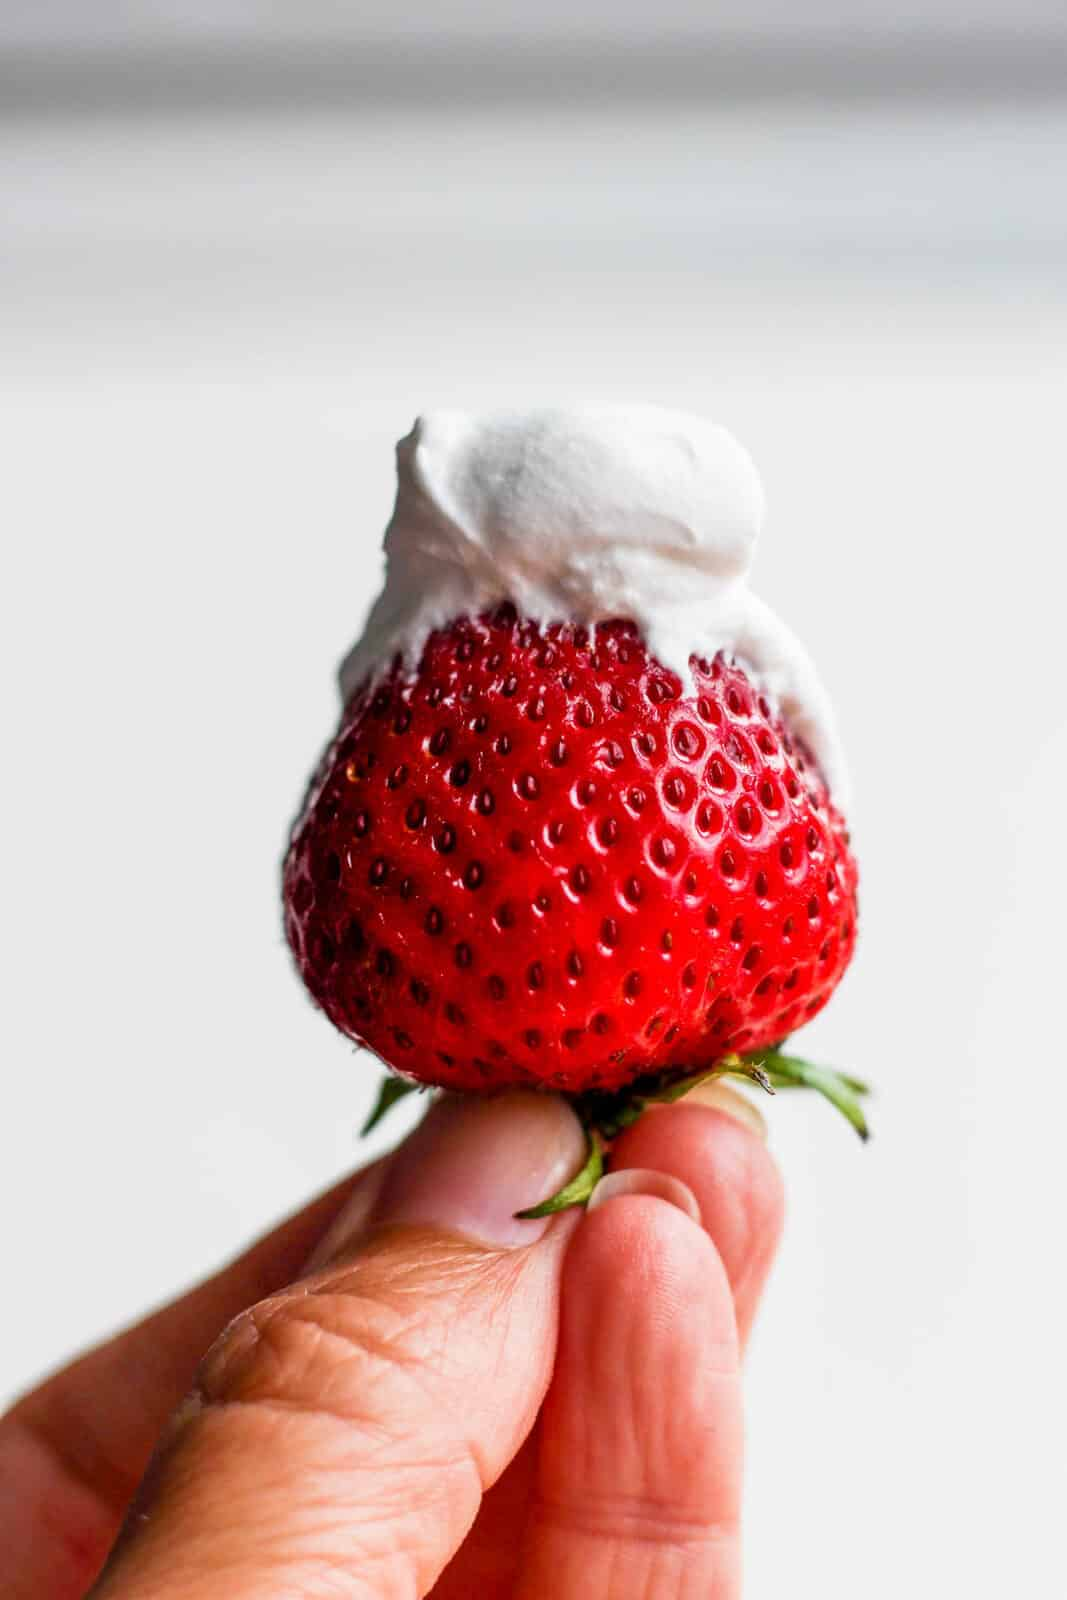 Dairy free whipped cream on a strawberry.